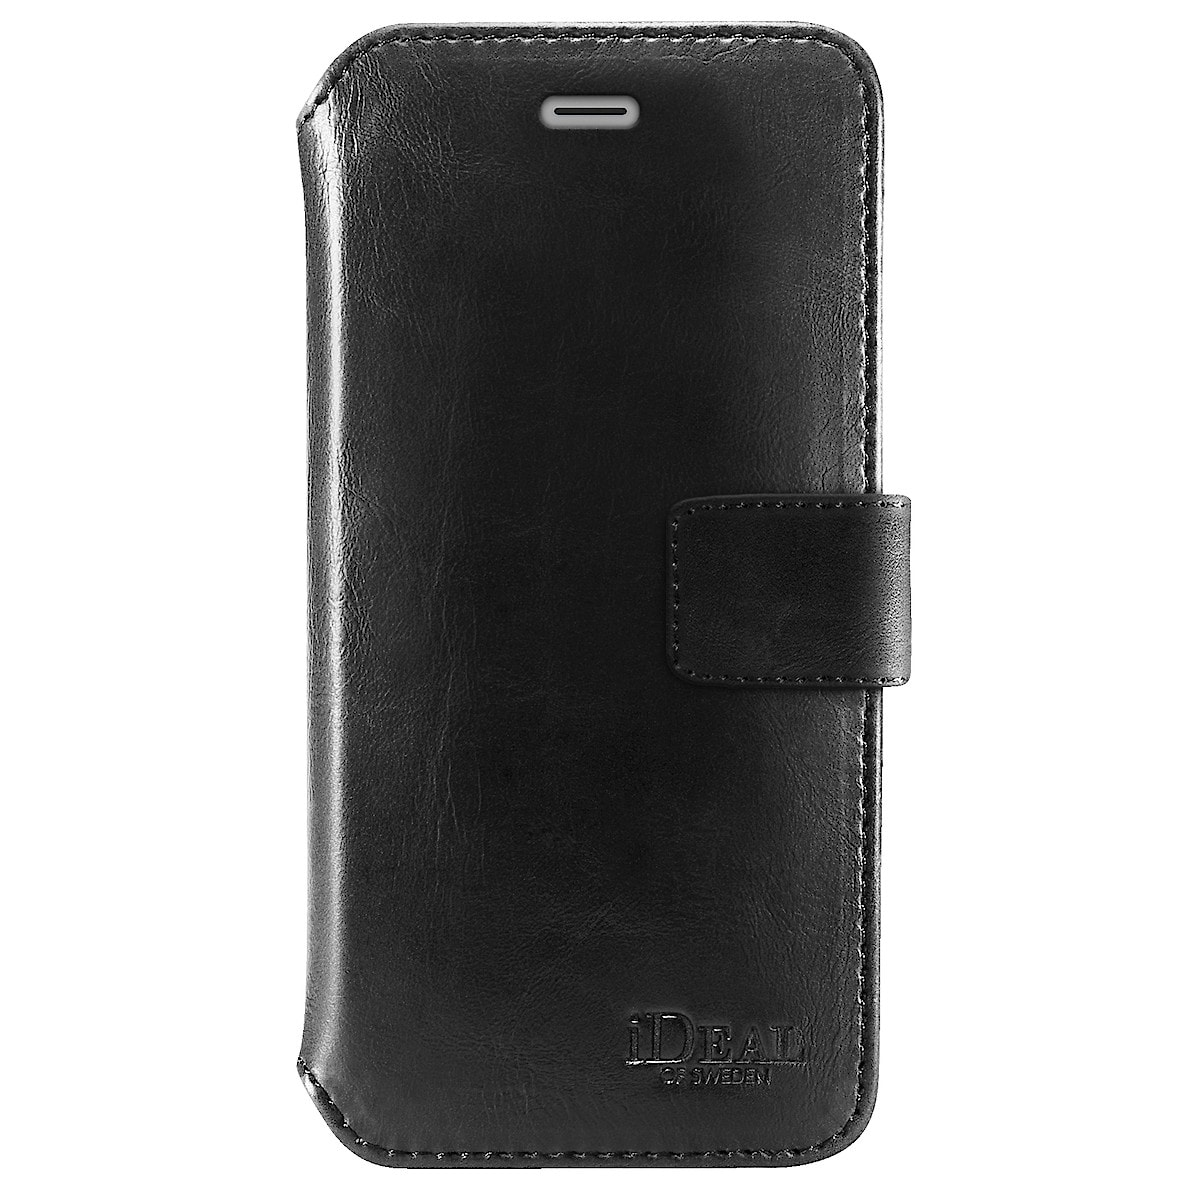 iDeal of Sweden Wallet Case for iPhone 8 Plus